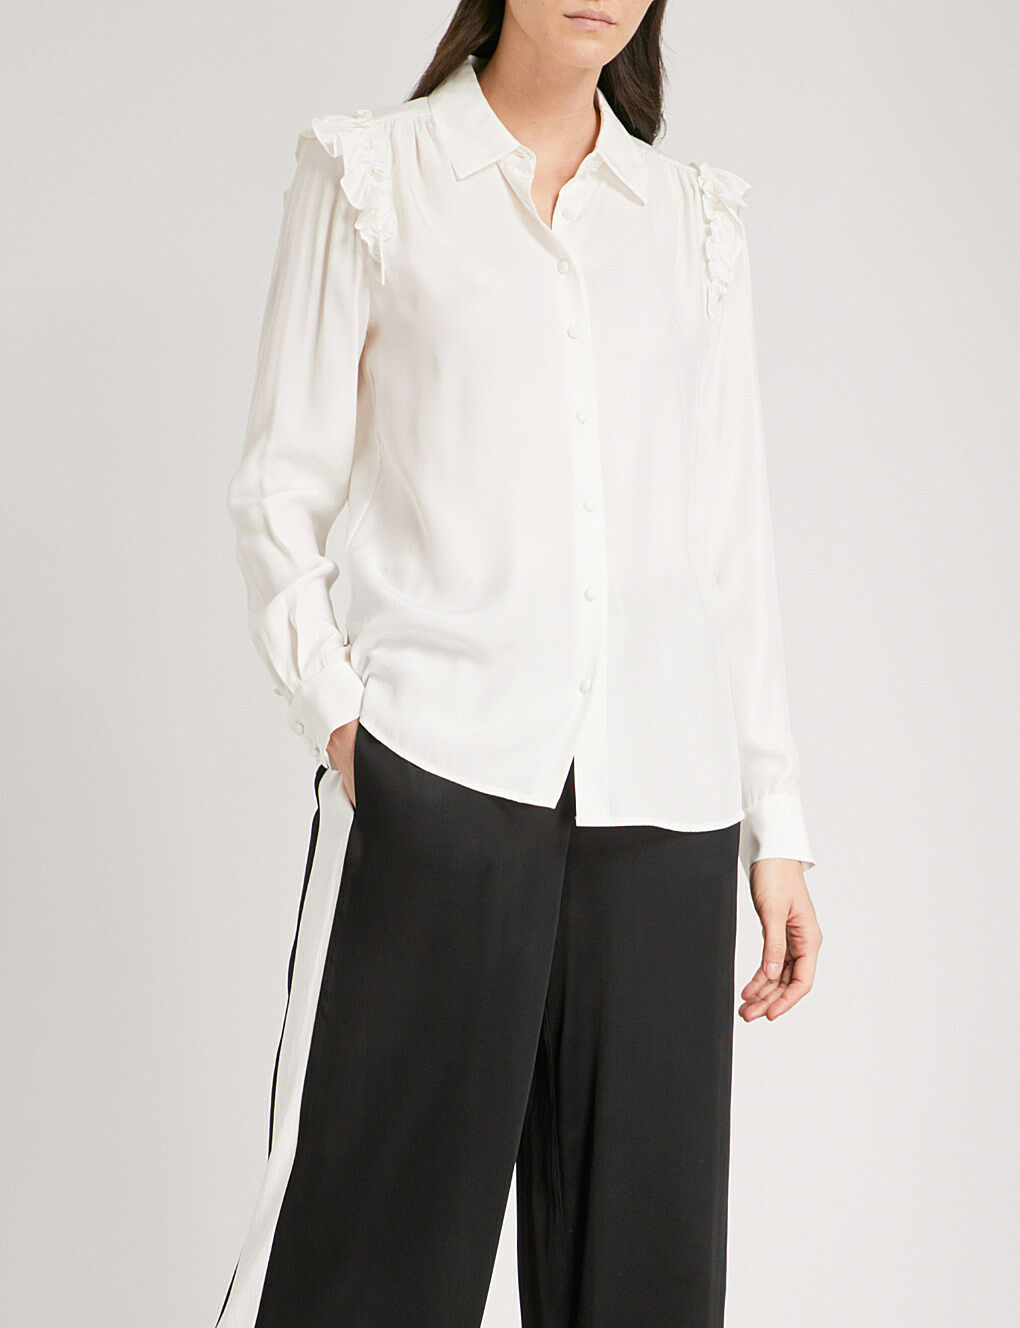 NEW FRAME Ruffle Long Sleeve Silk Blouse in Off Weiß - Größe M  T640